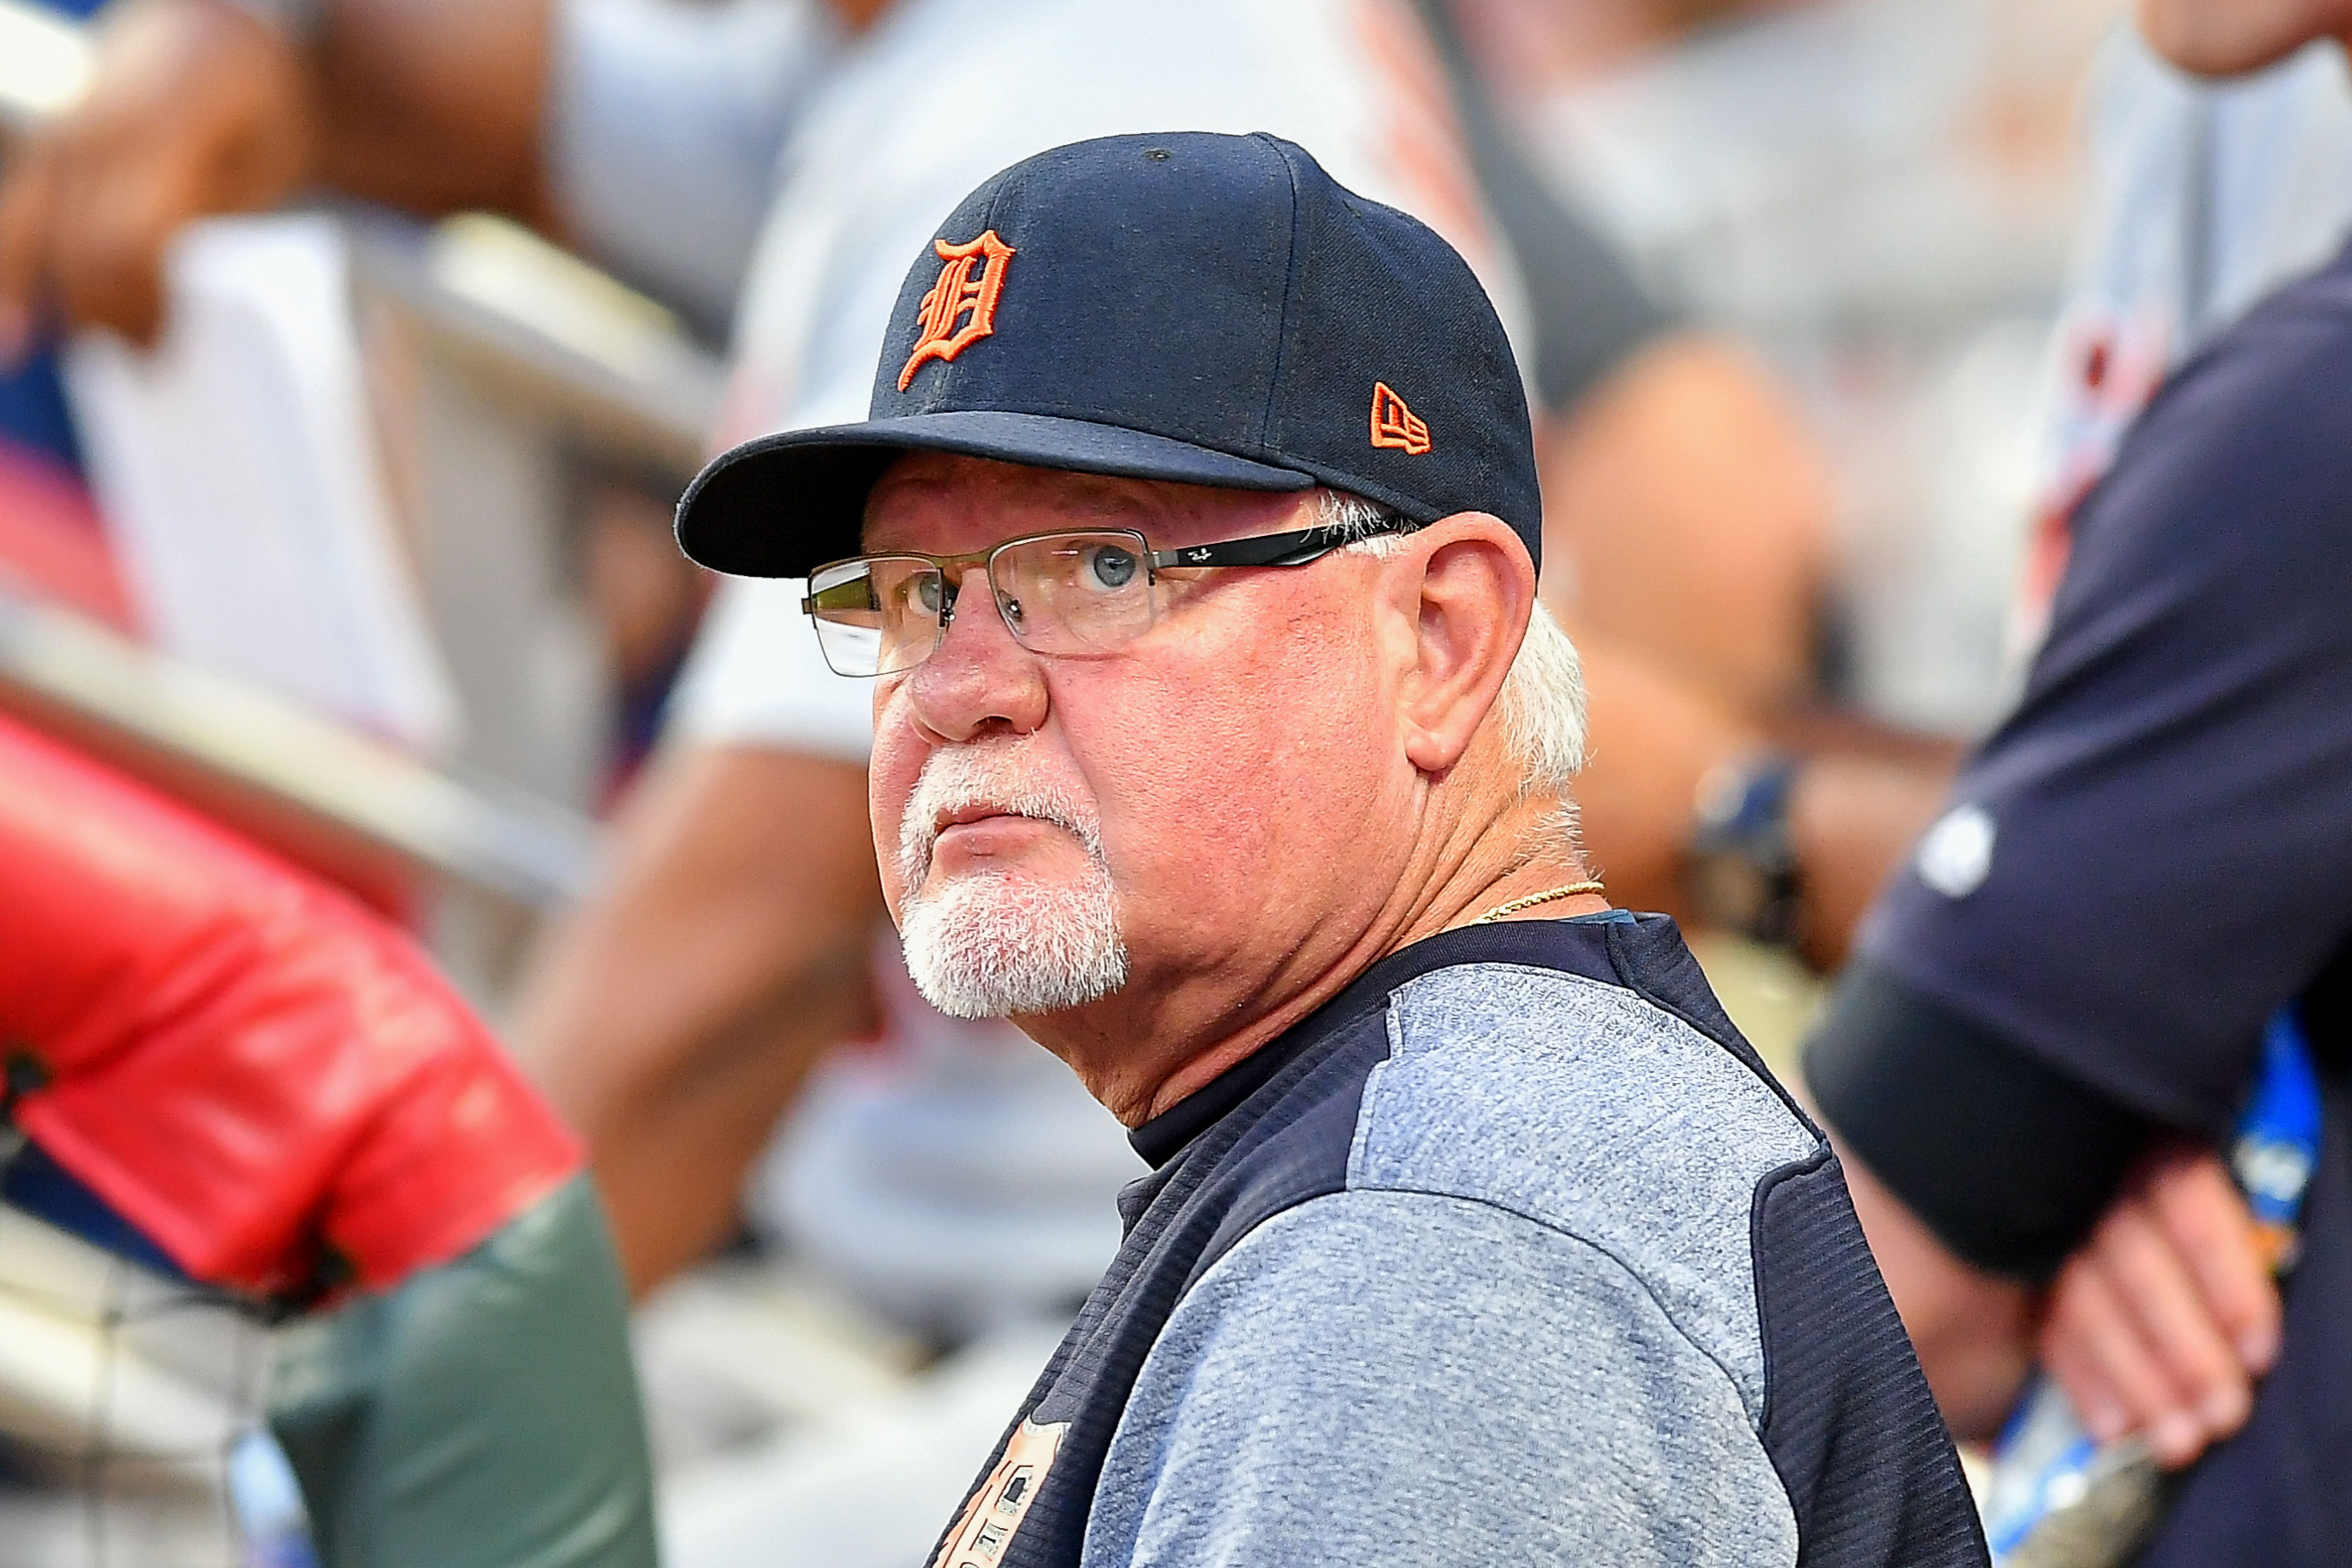 Detroit Tigers manager Ron Gardenhire retires due to health concerns